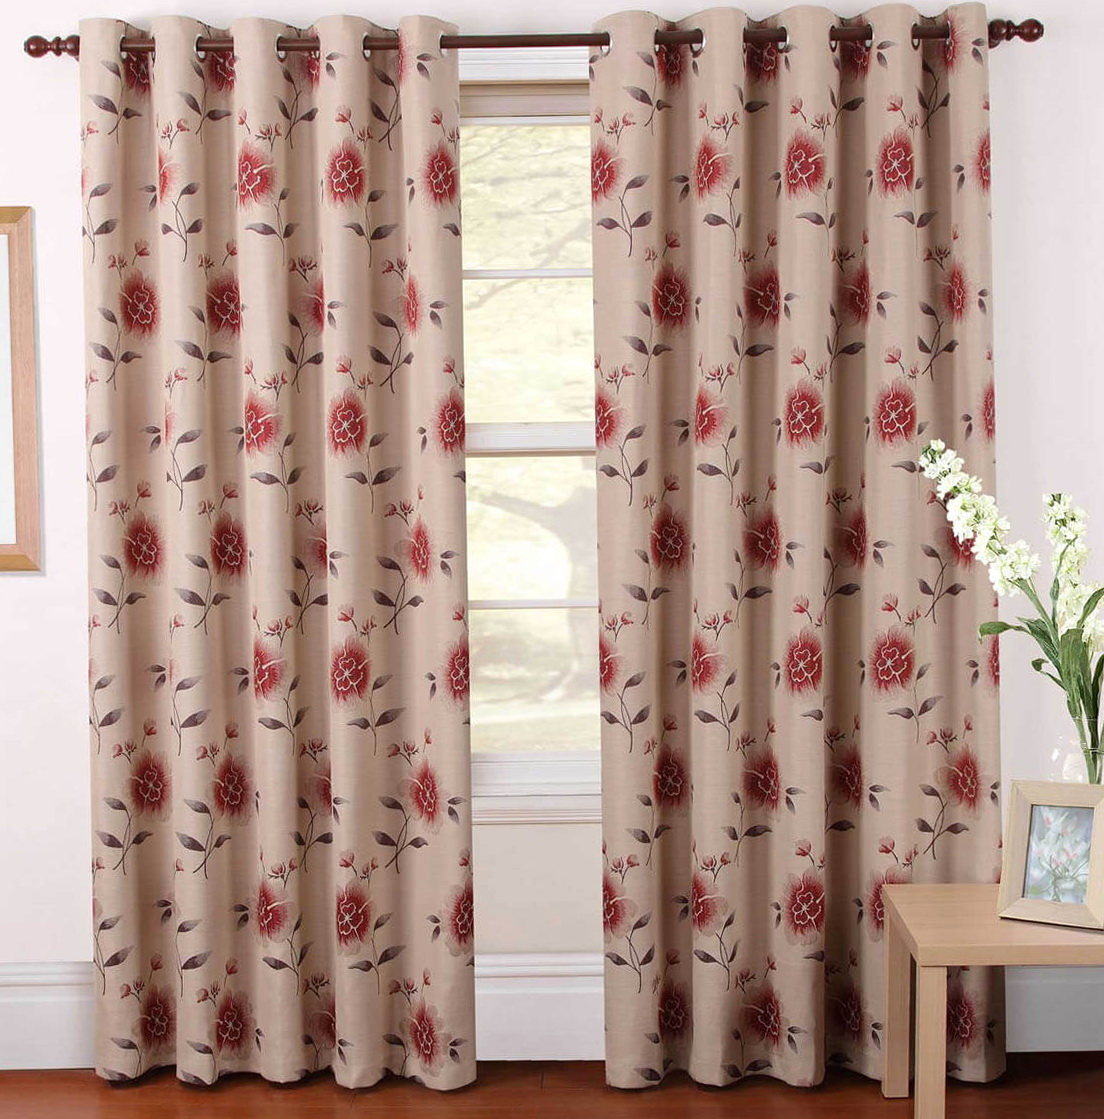 Ikea Linen Curtains Uk Home Design Ideas